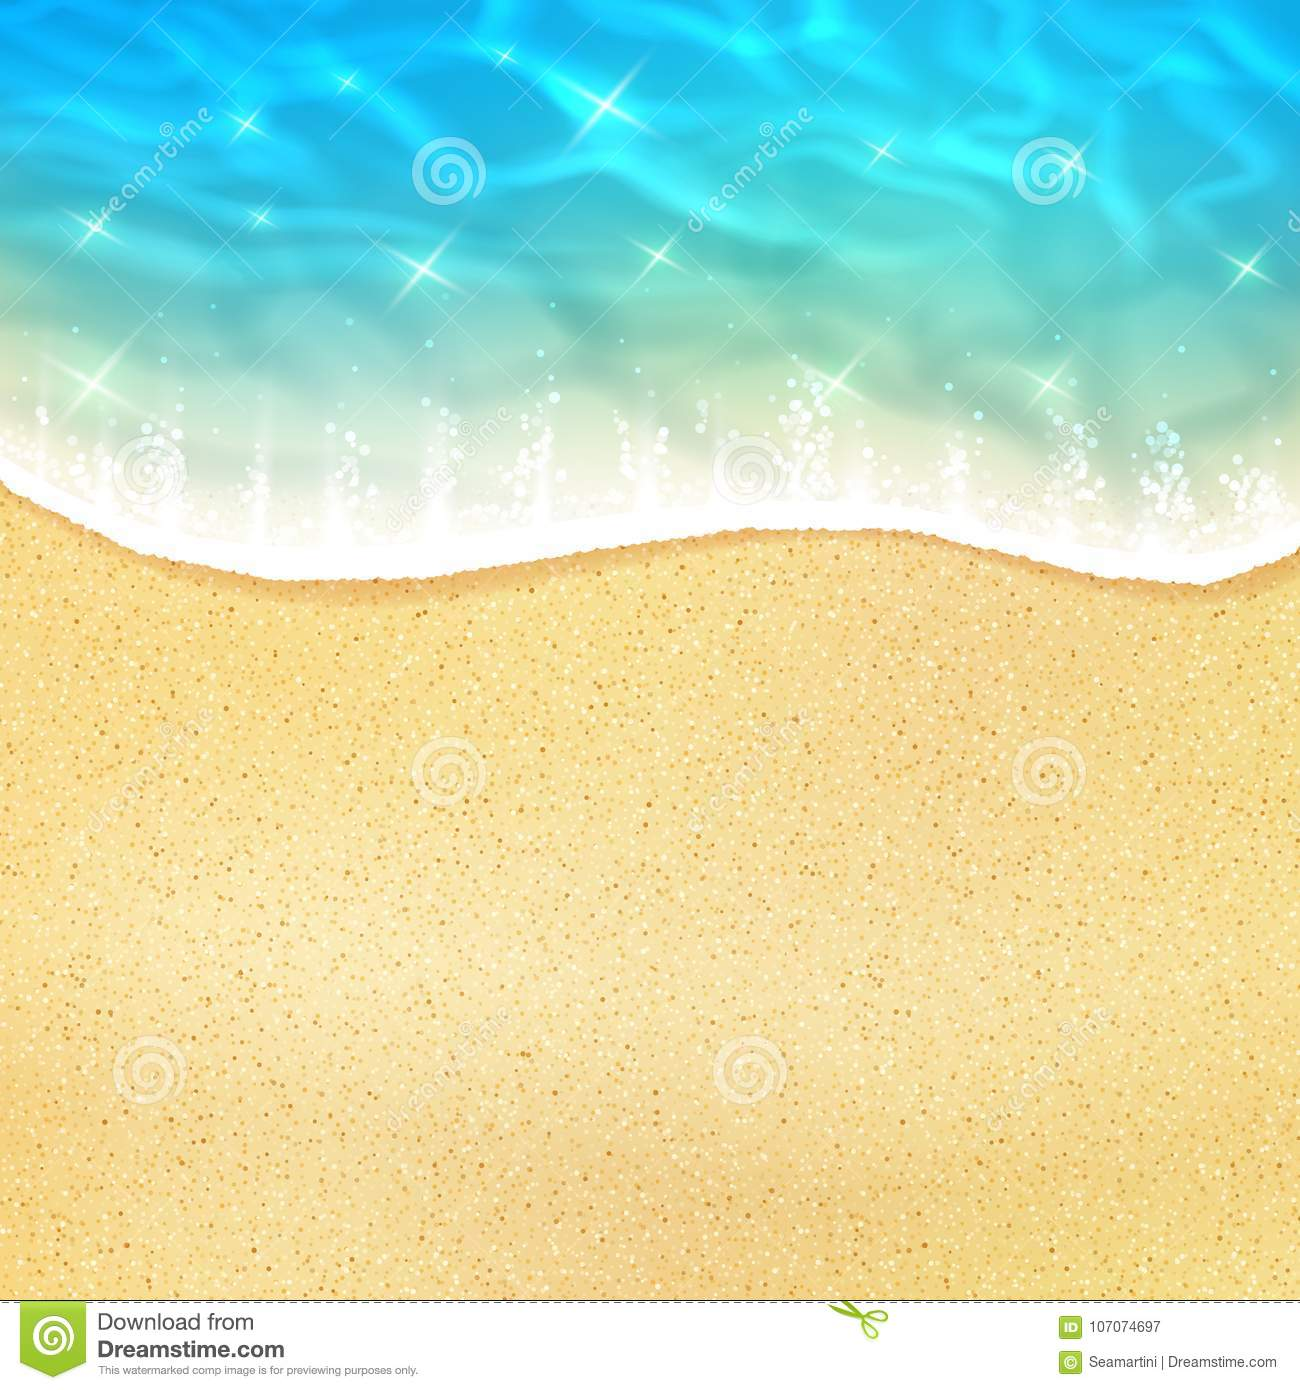 Vector sea beach or ocean shore sand and waves